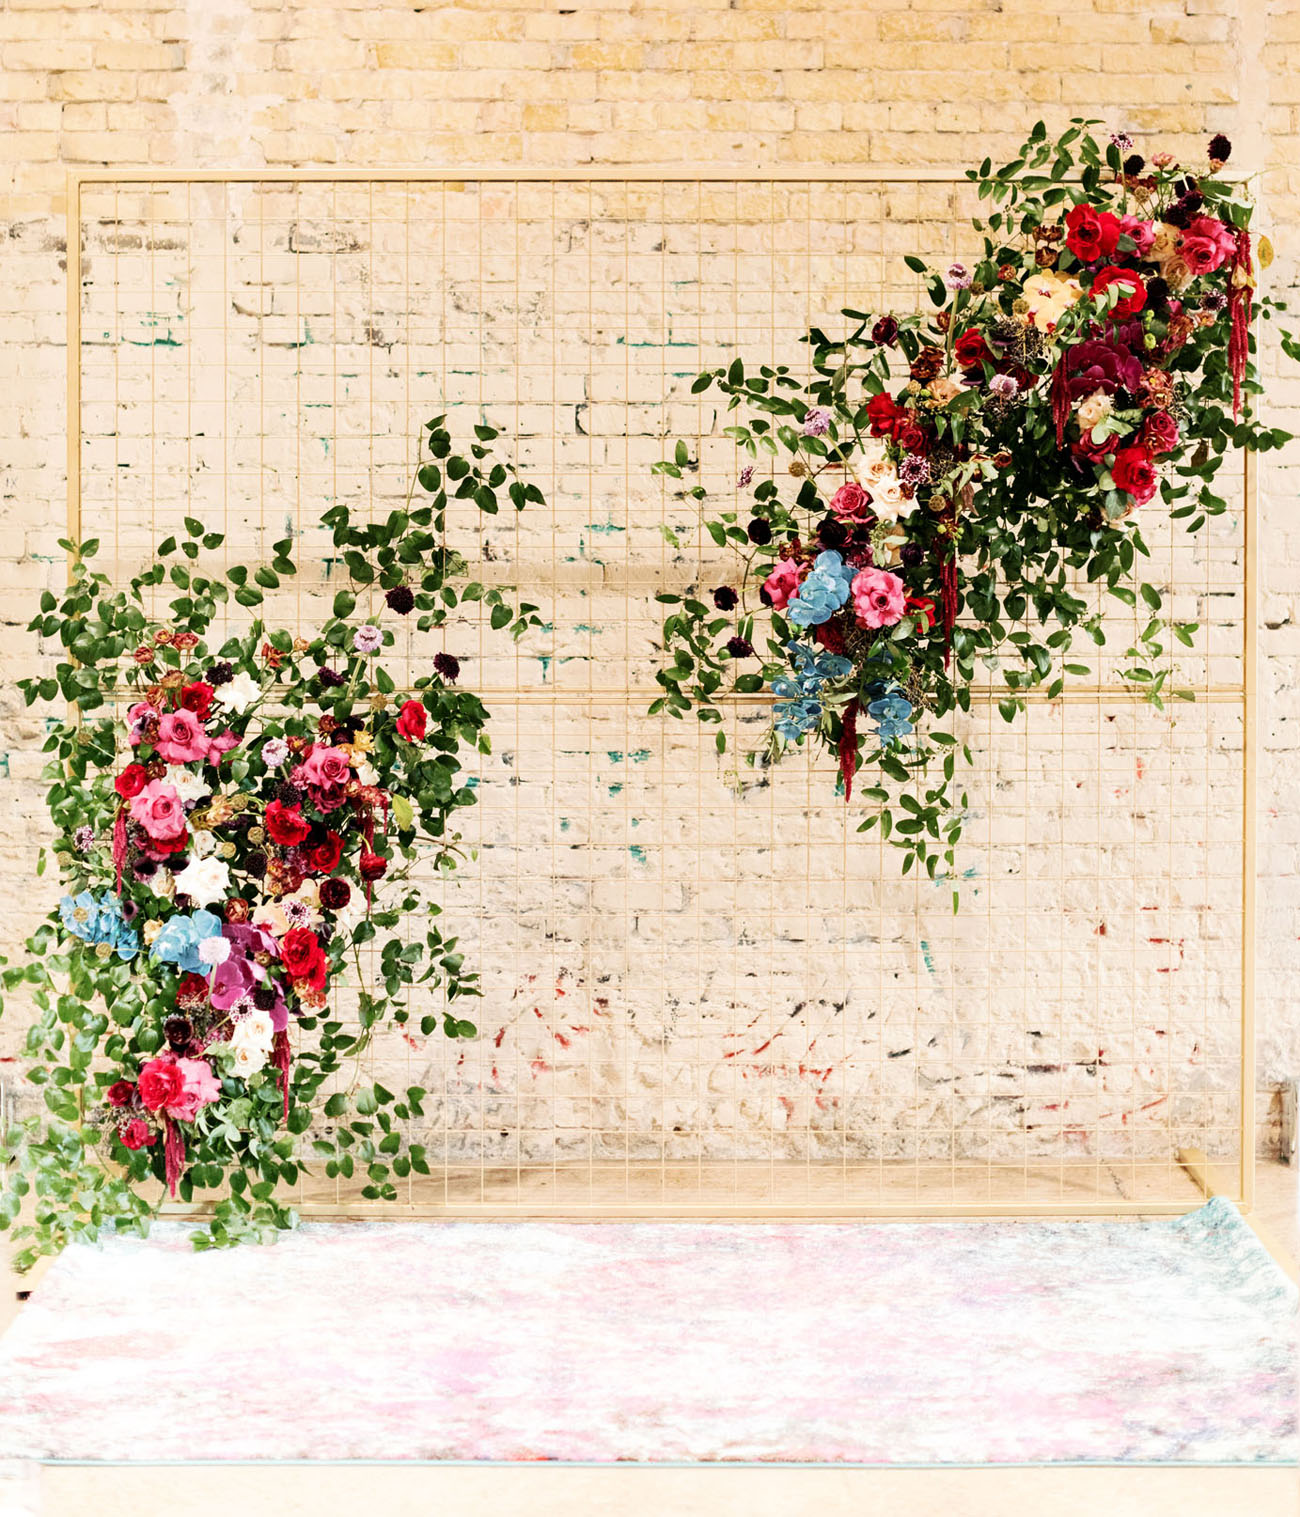 hanging floral backdrop